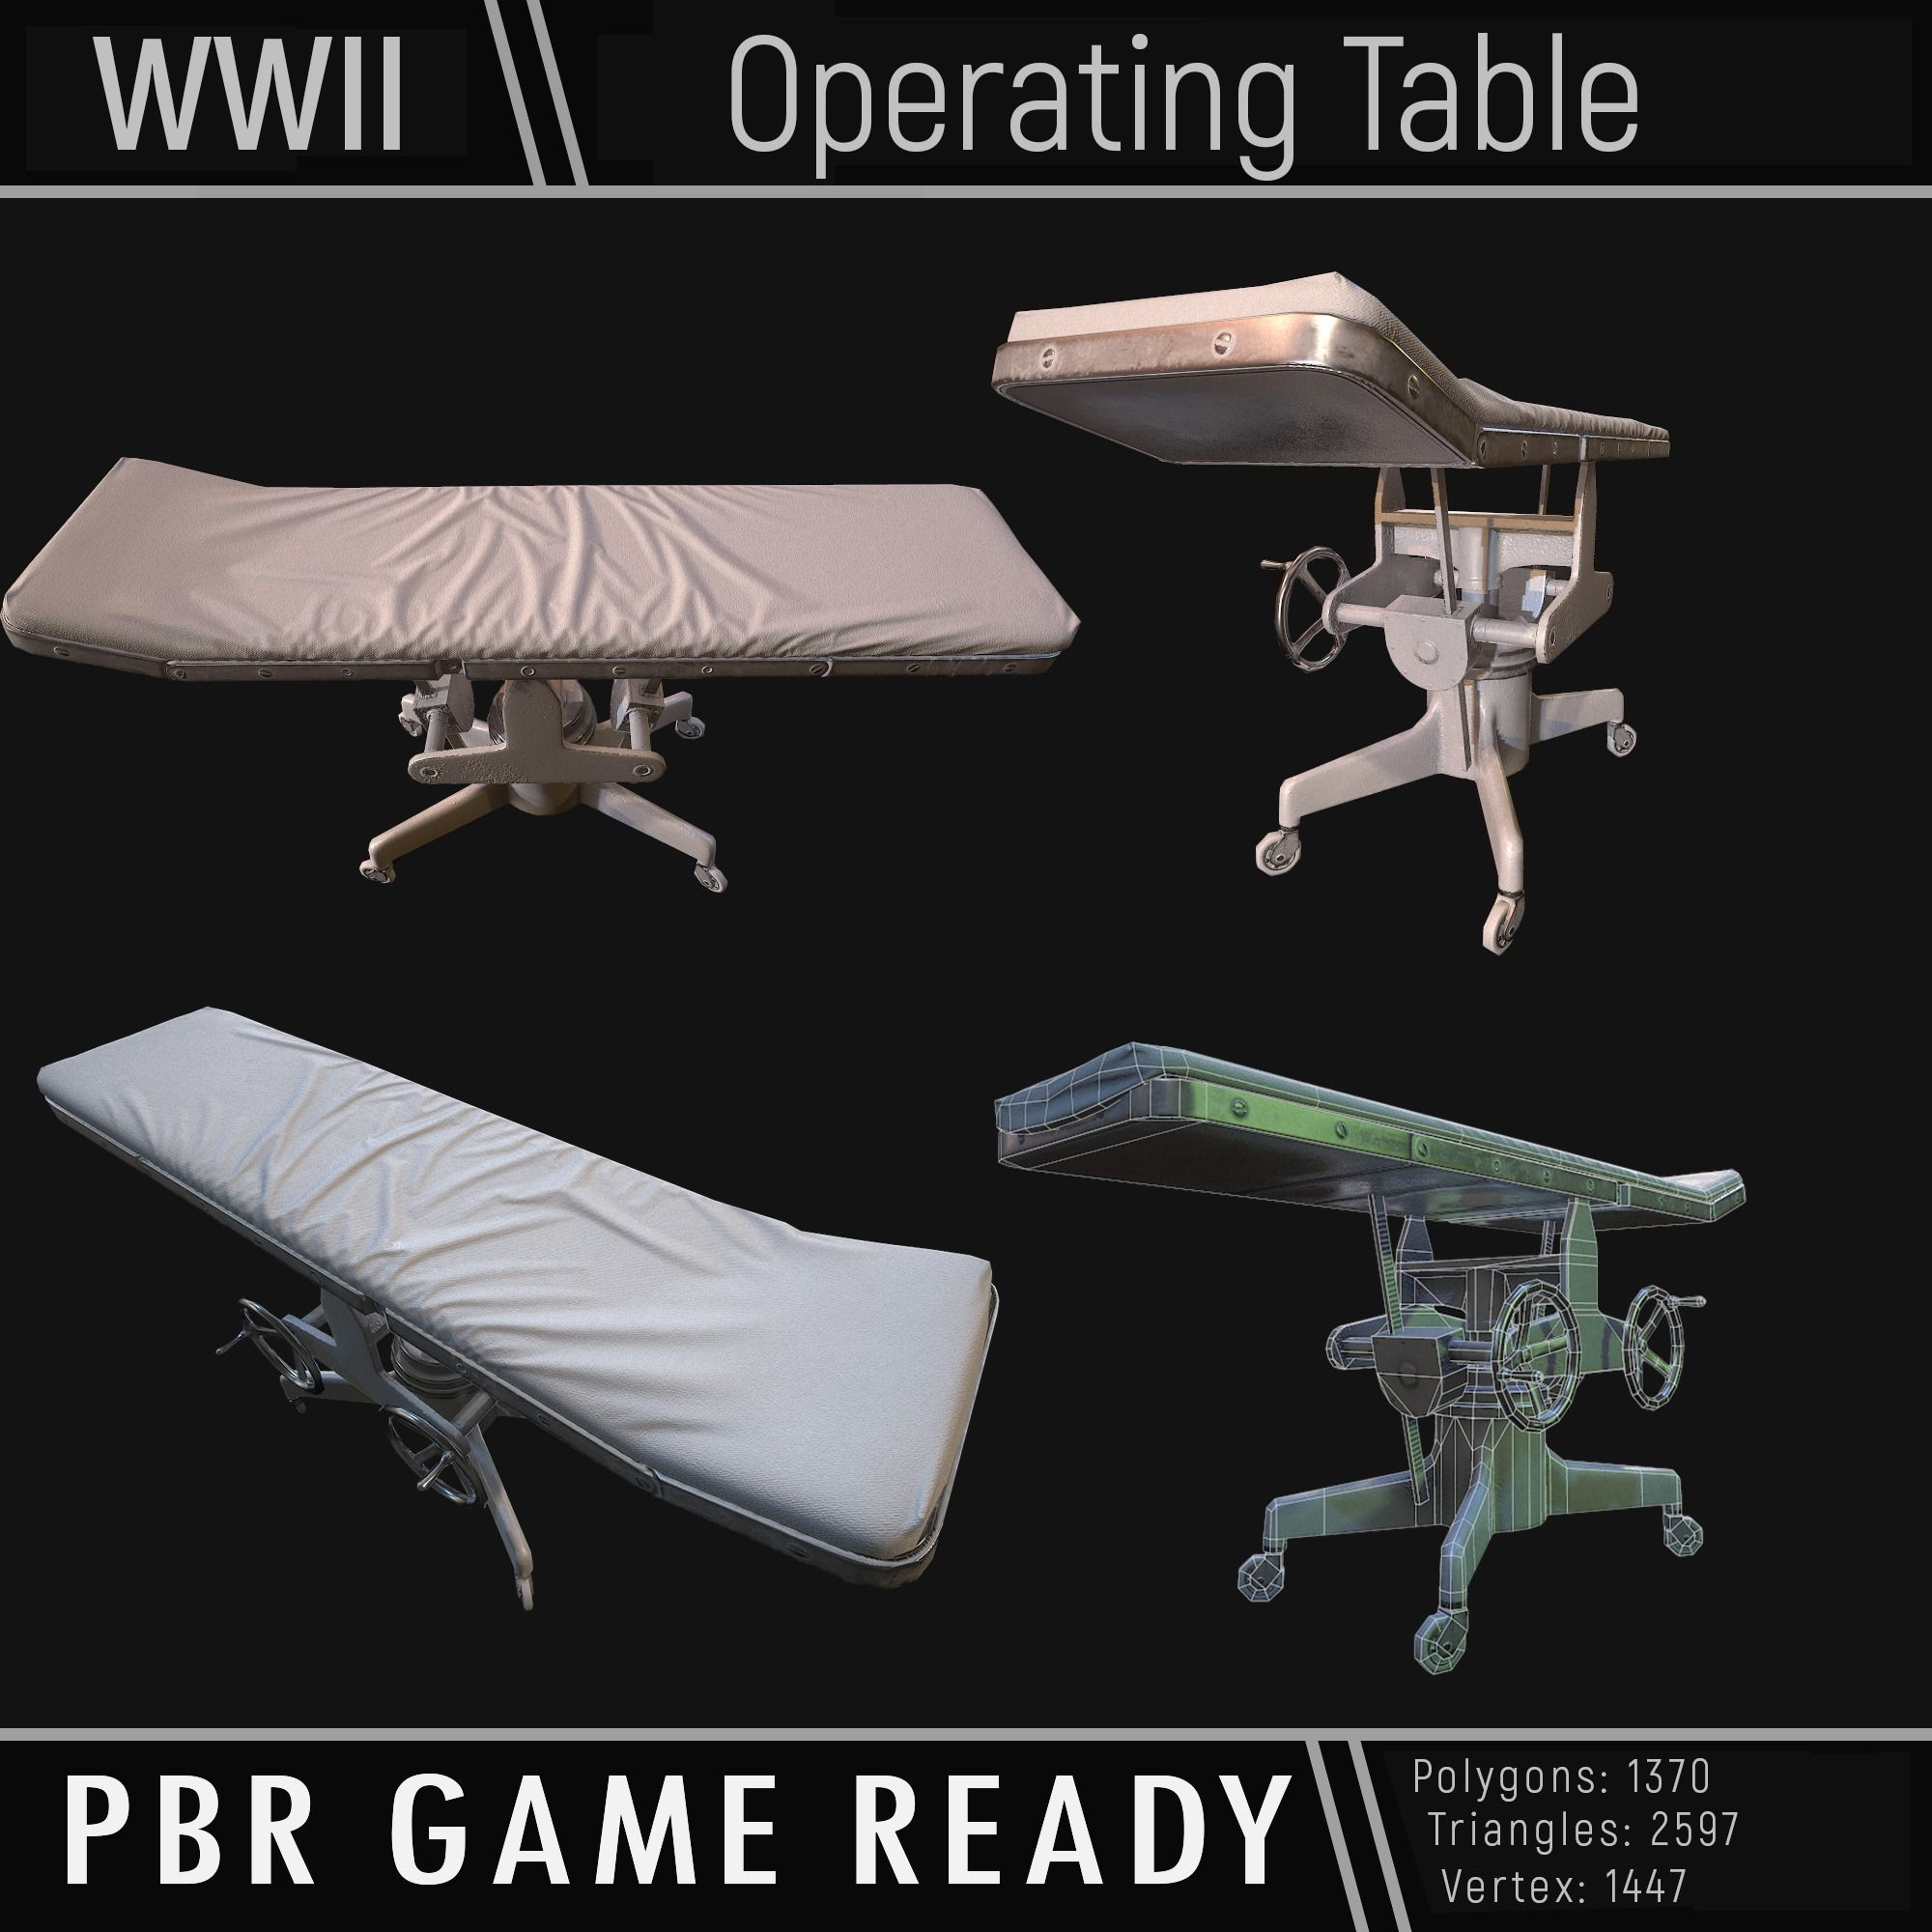 Operating Table WWII